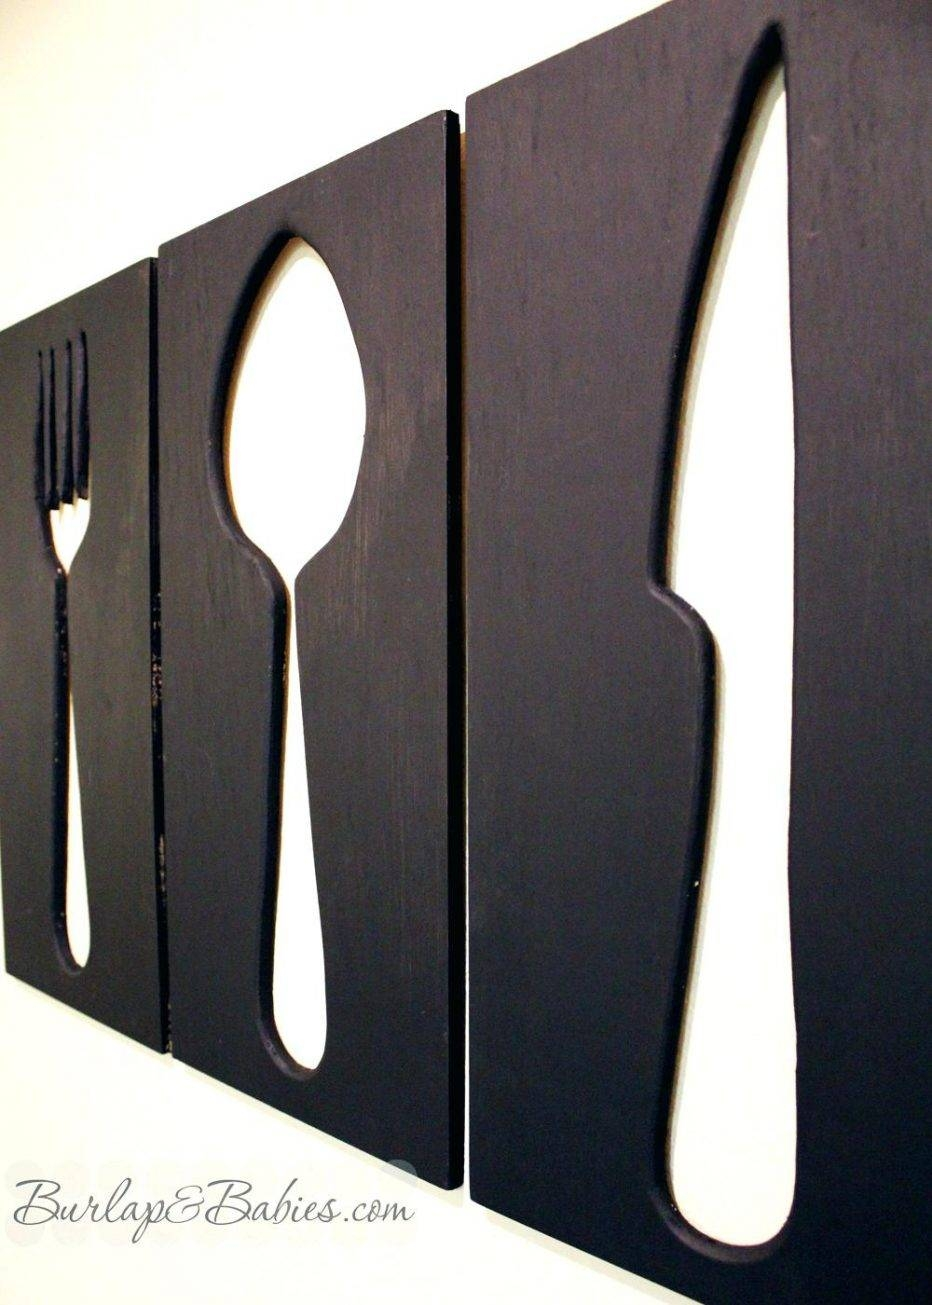 Wall Decor : Wall Interior Kitchen Utensils Wall Art Kitchen Throughout Latest Large Utensil Wall Art (View 16 of 20)